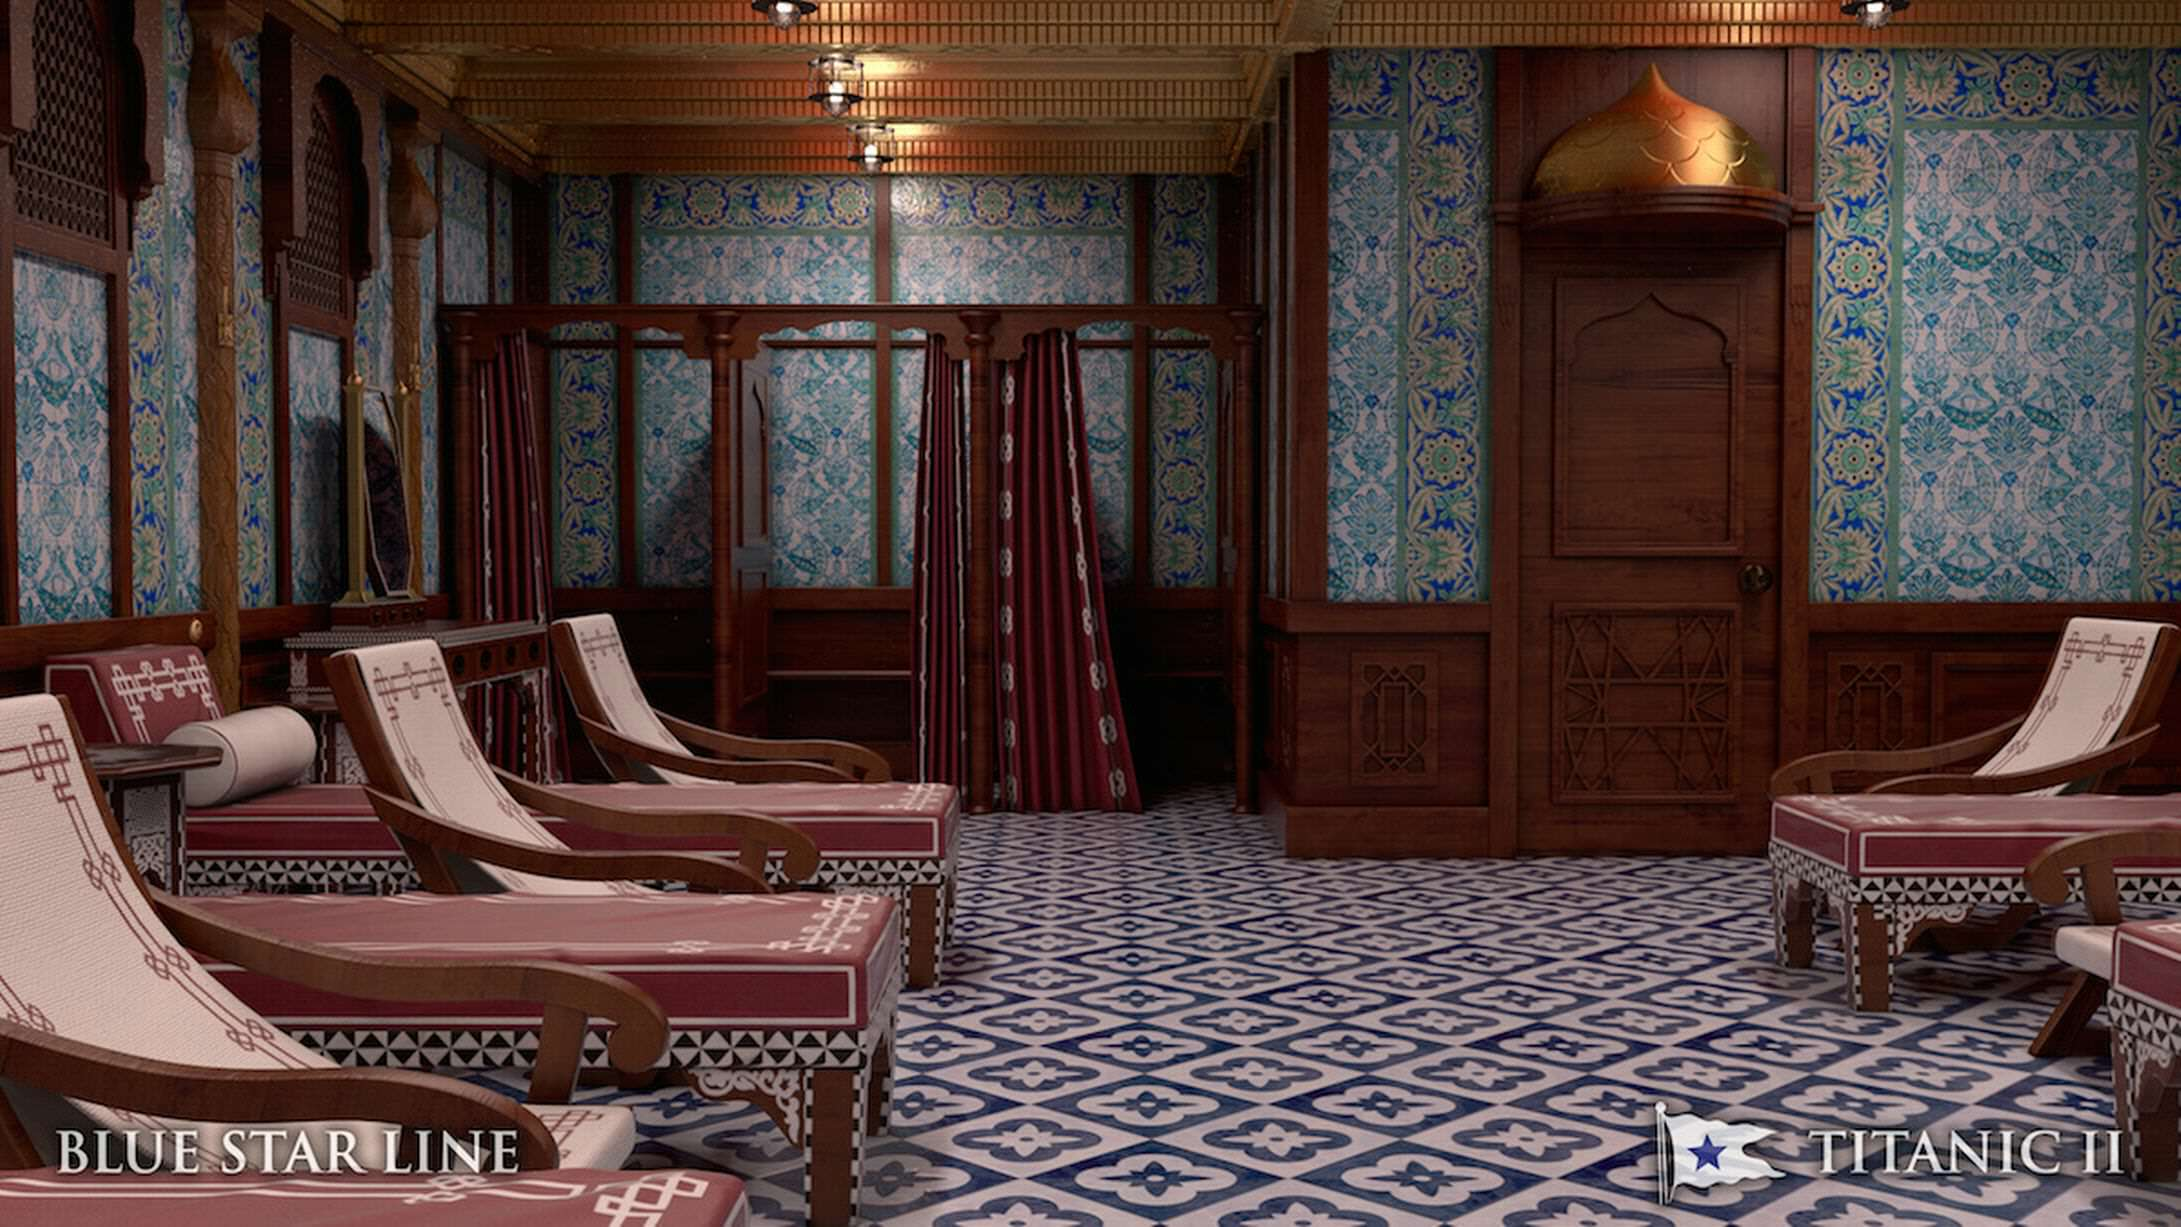 Incredible New Photos Give First Look Inside Titanic 2 titanic new 1